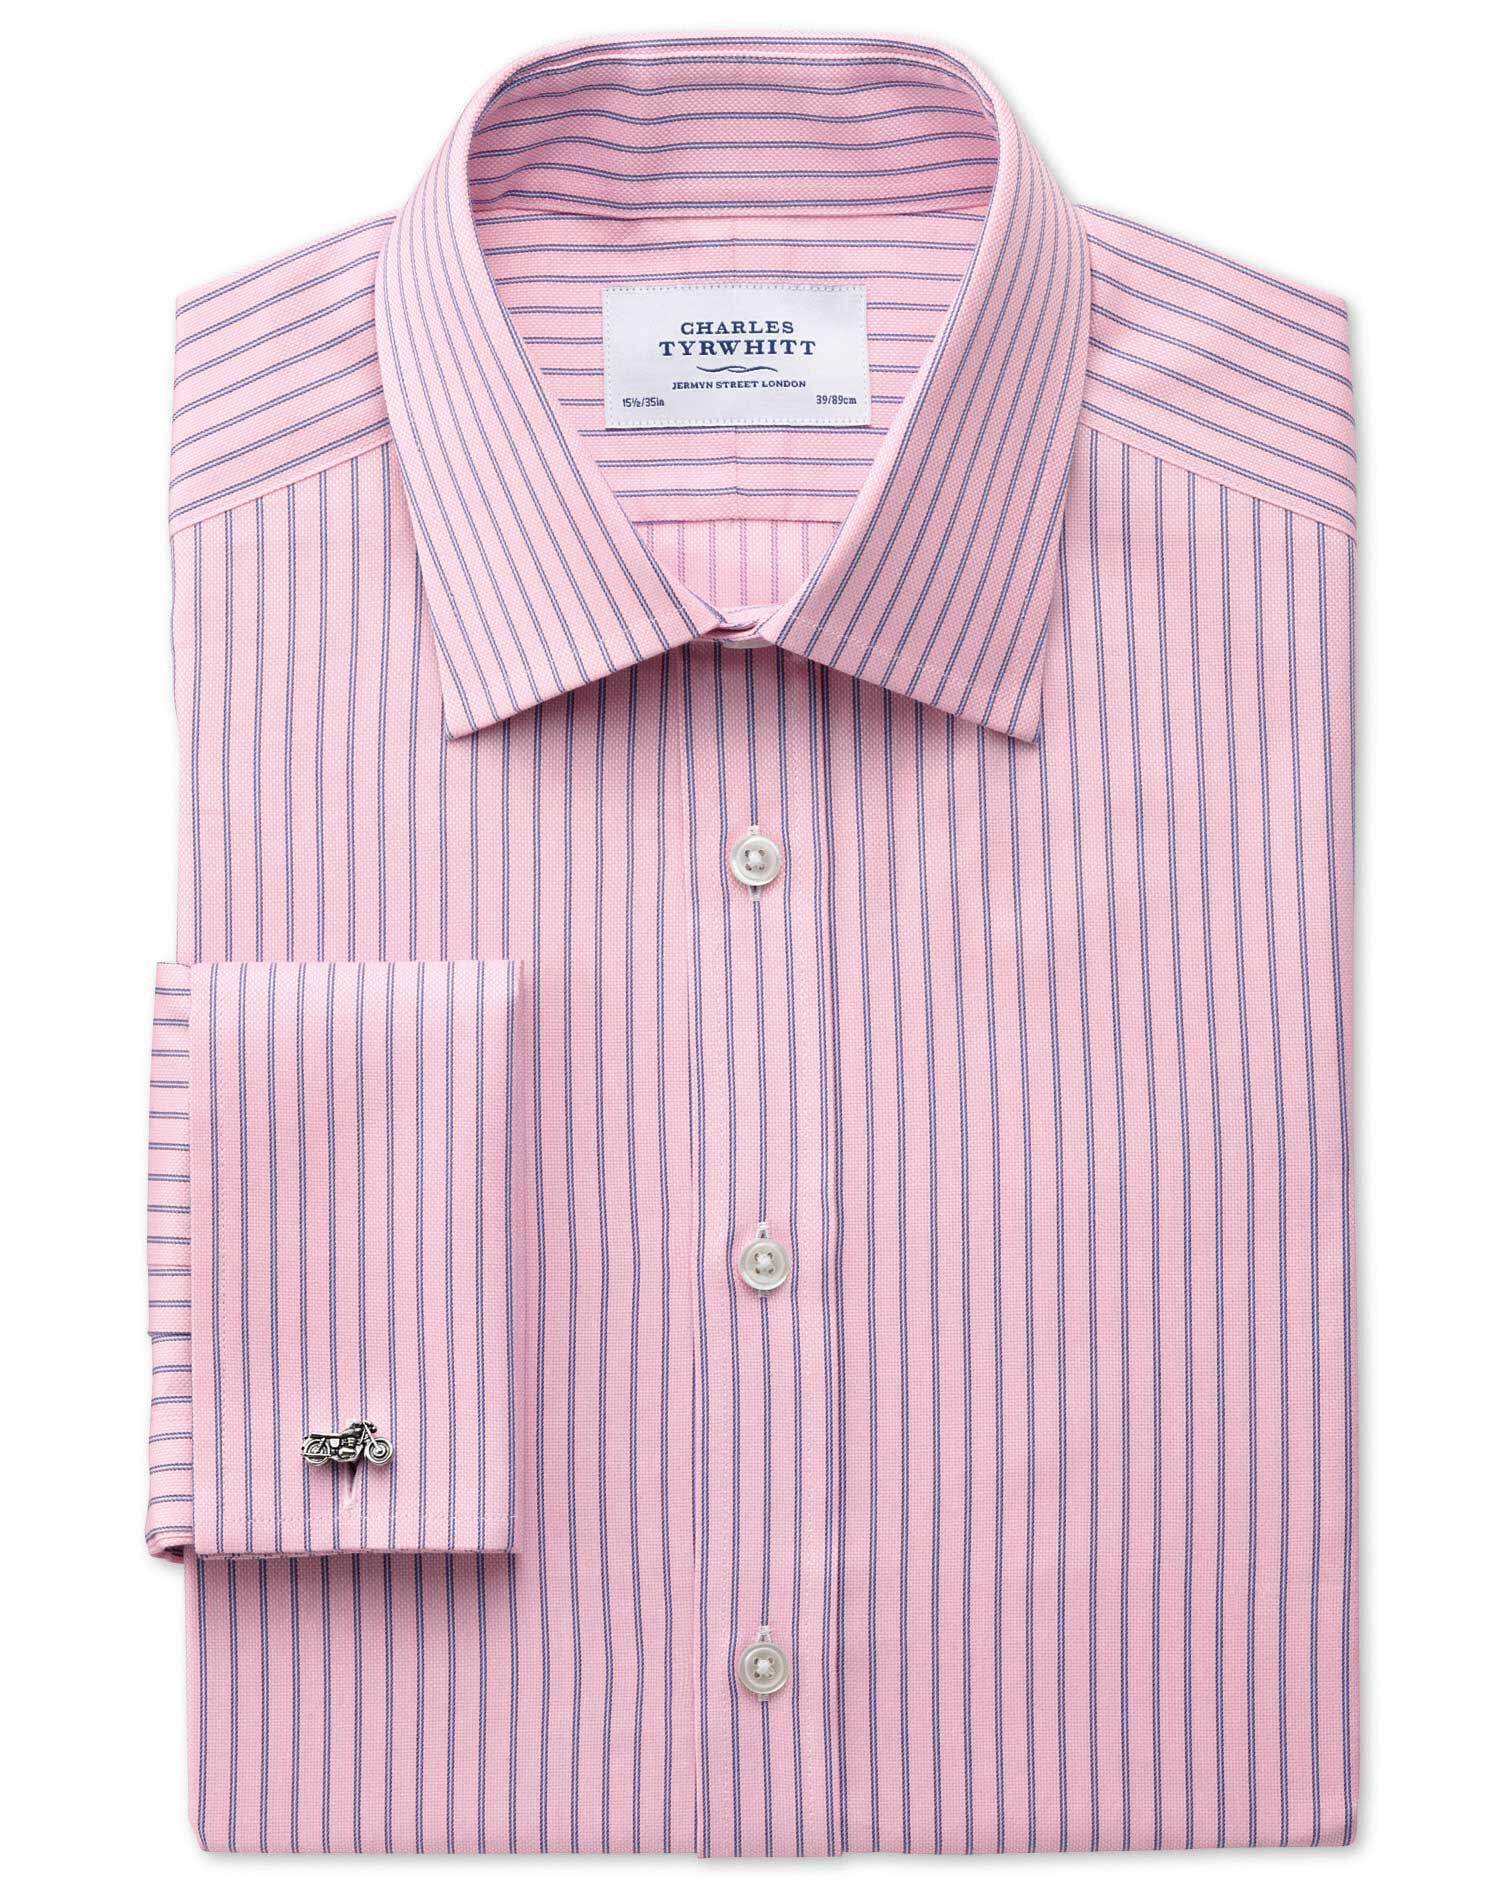 Classic Fit Egyptian Cotton Textured Stripe Pink Formal Shirt Single Cuff Size 16/38 by Charles Tyrw